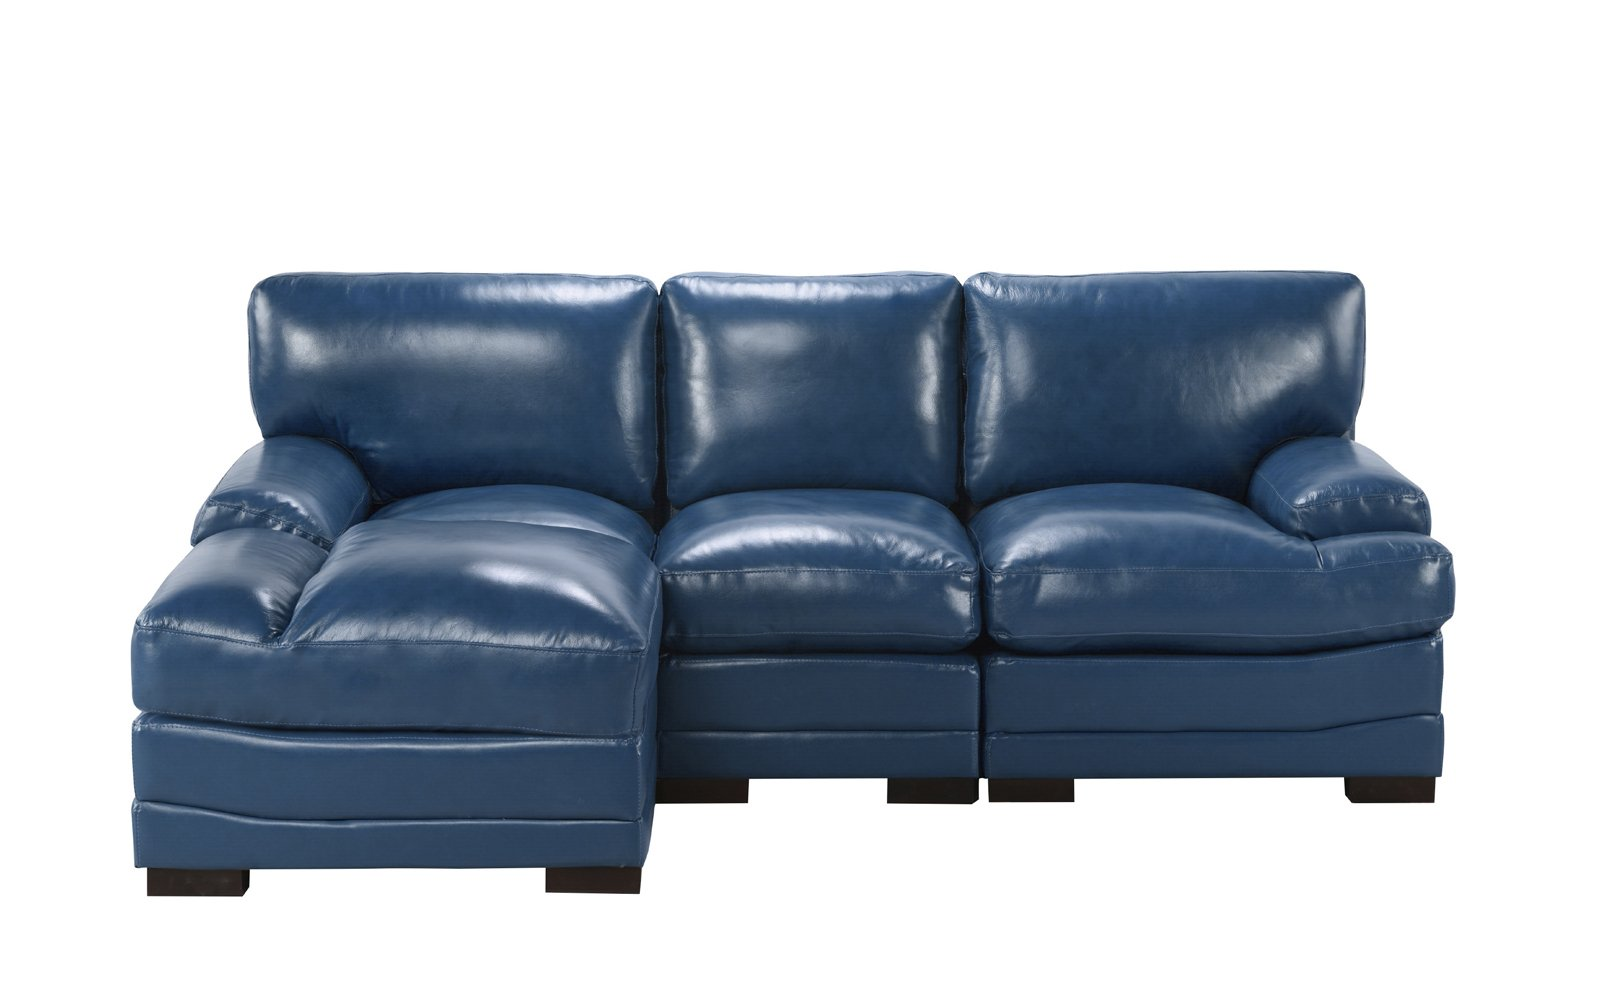 Enjoyable Details About Modern Left Facing Sectional Sofa Leather Match Fabric High Density Navy Blue Dailytribune Chair Design For Home Dailytribuneorg